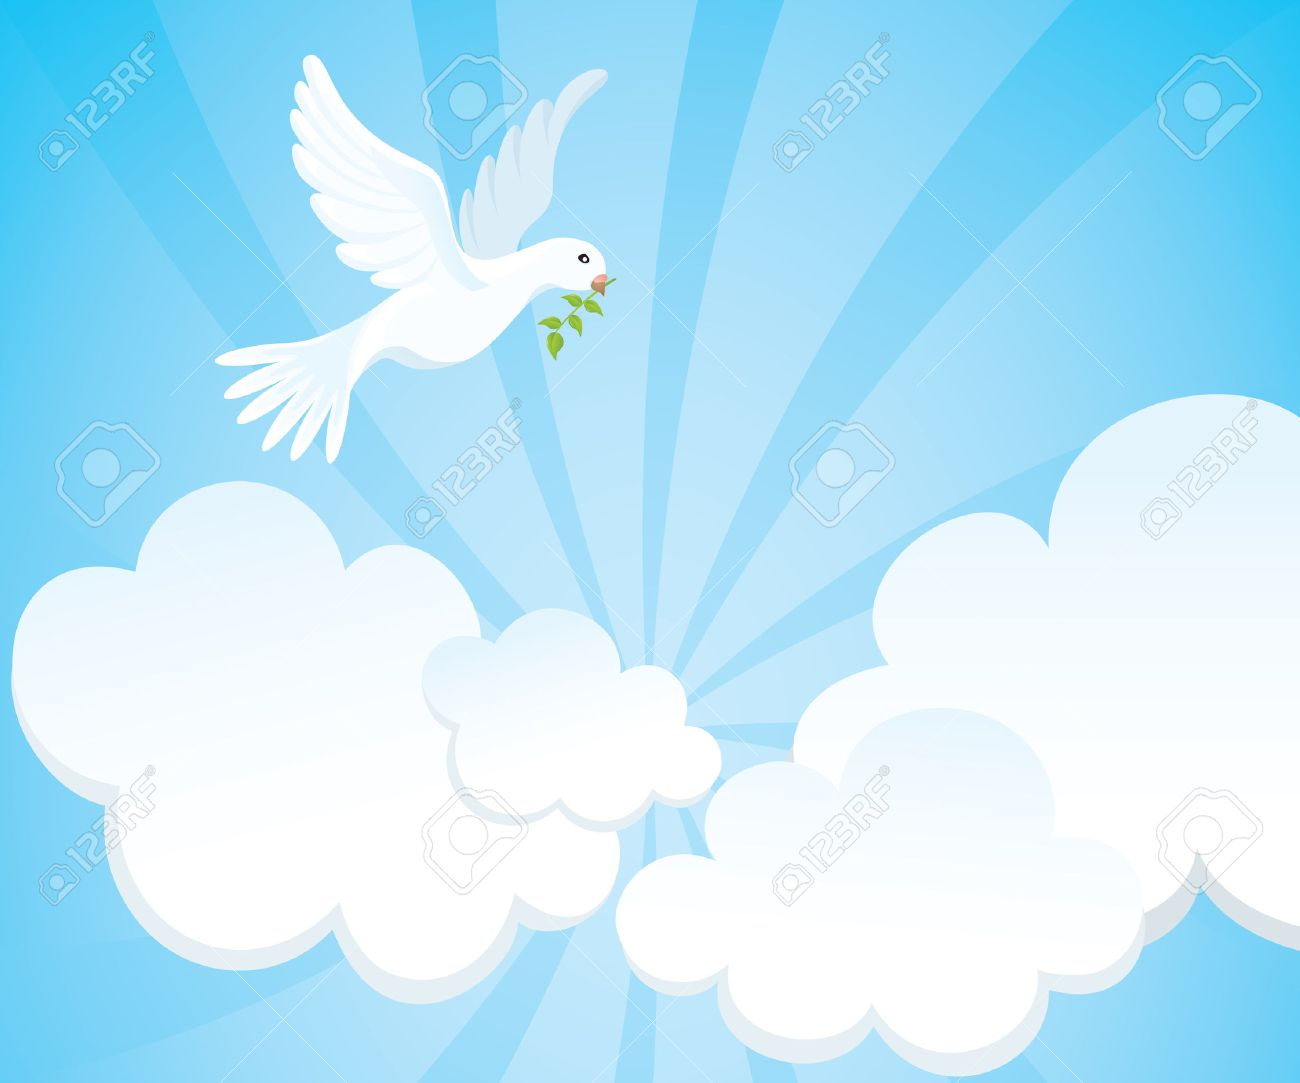 White dove with a green twig in the cloudy sky. Vector illustration. Stock Vector - 5360670